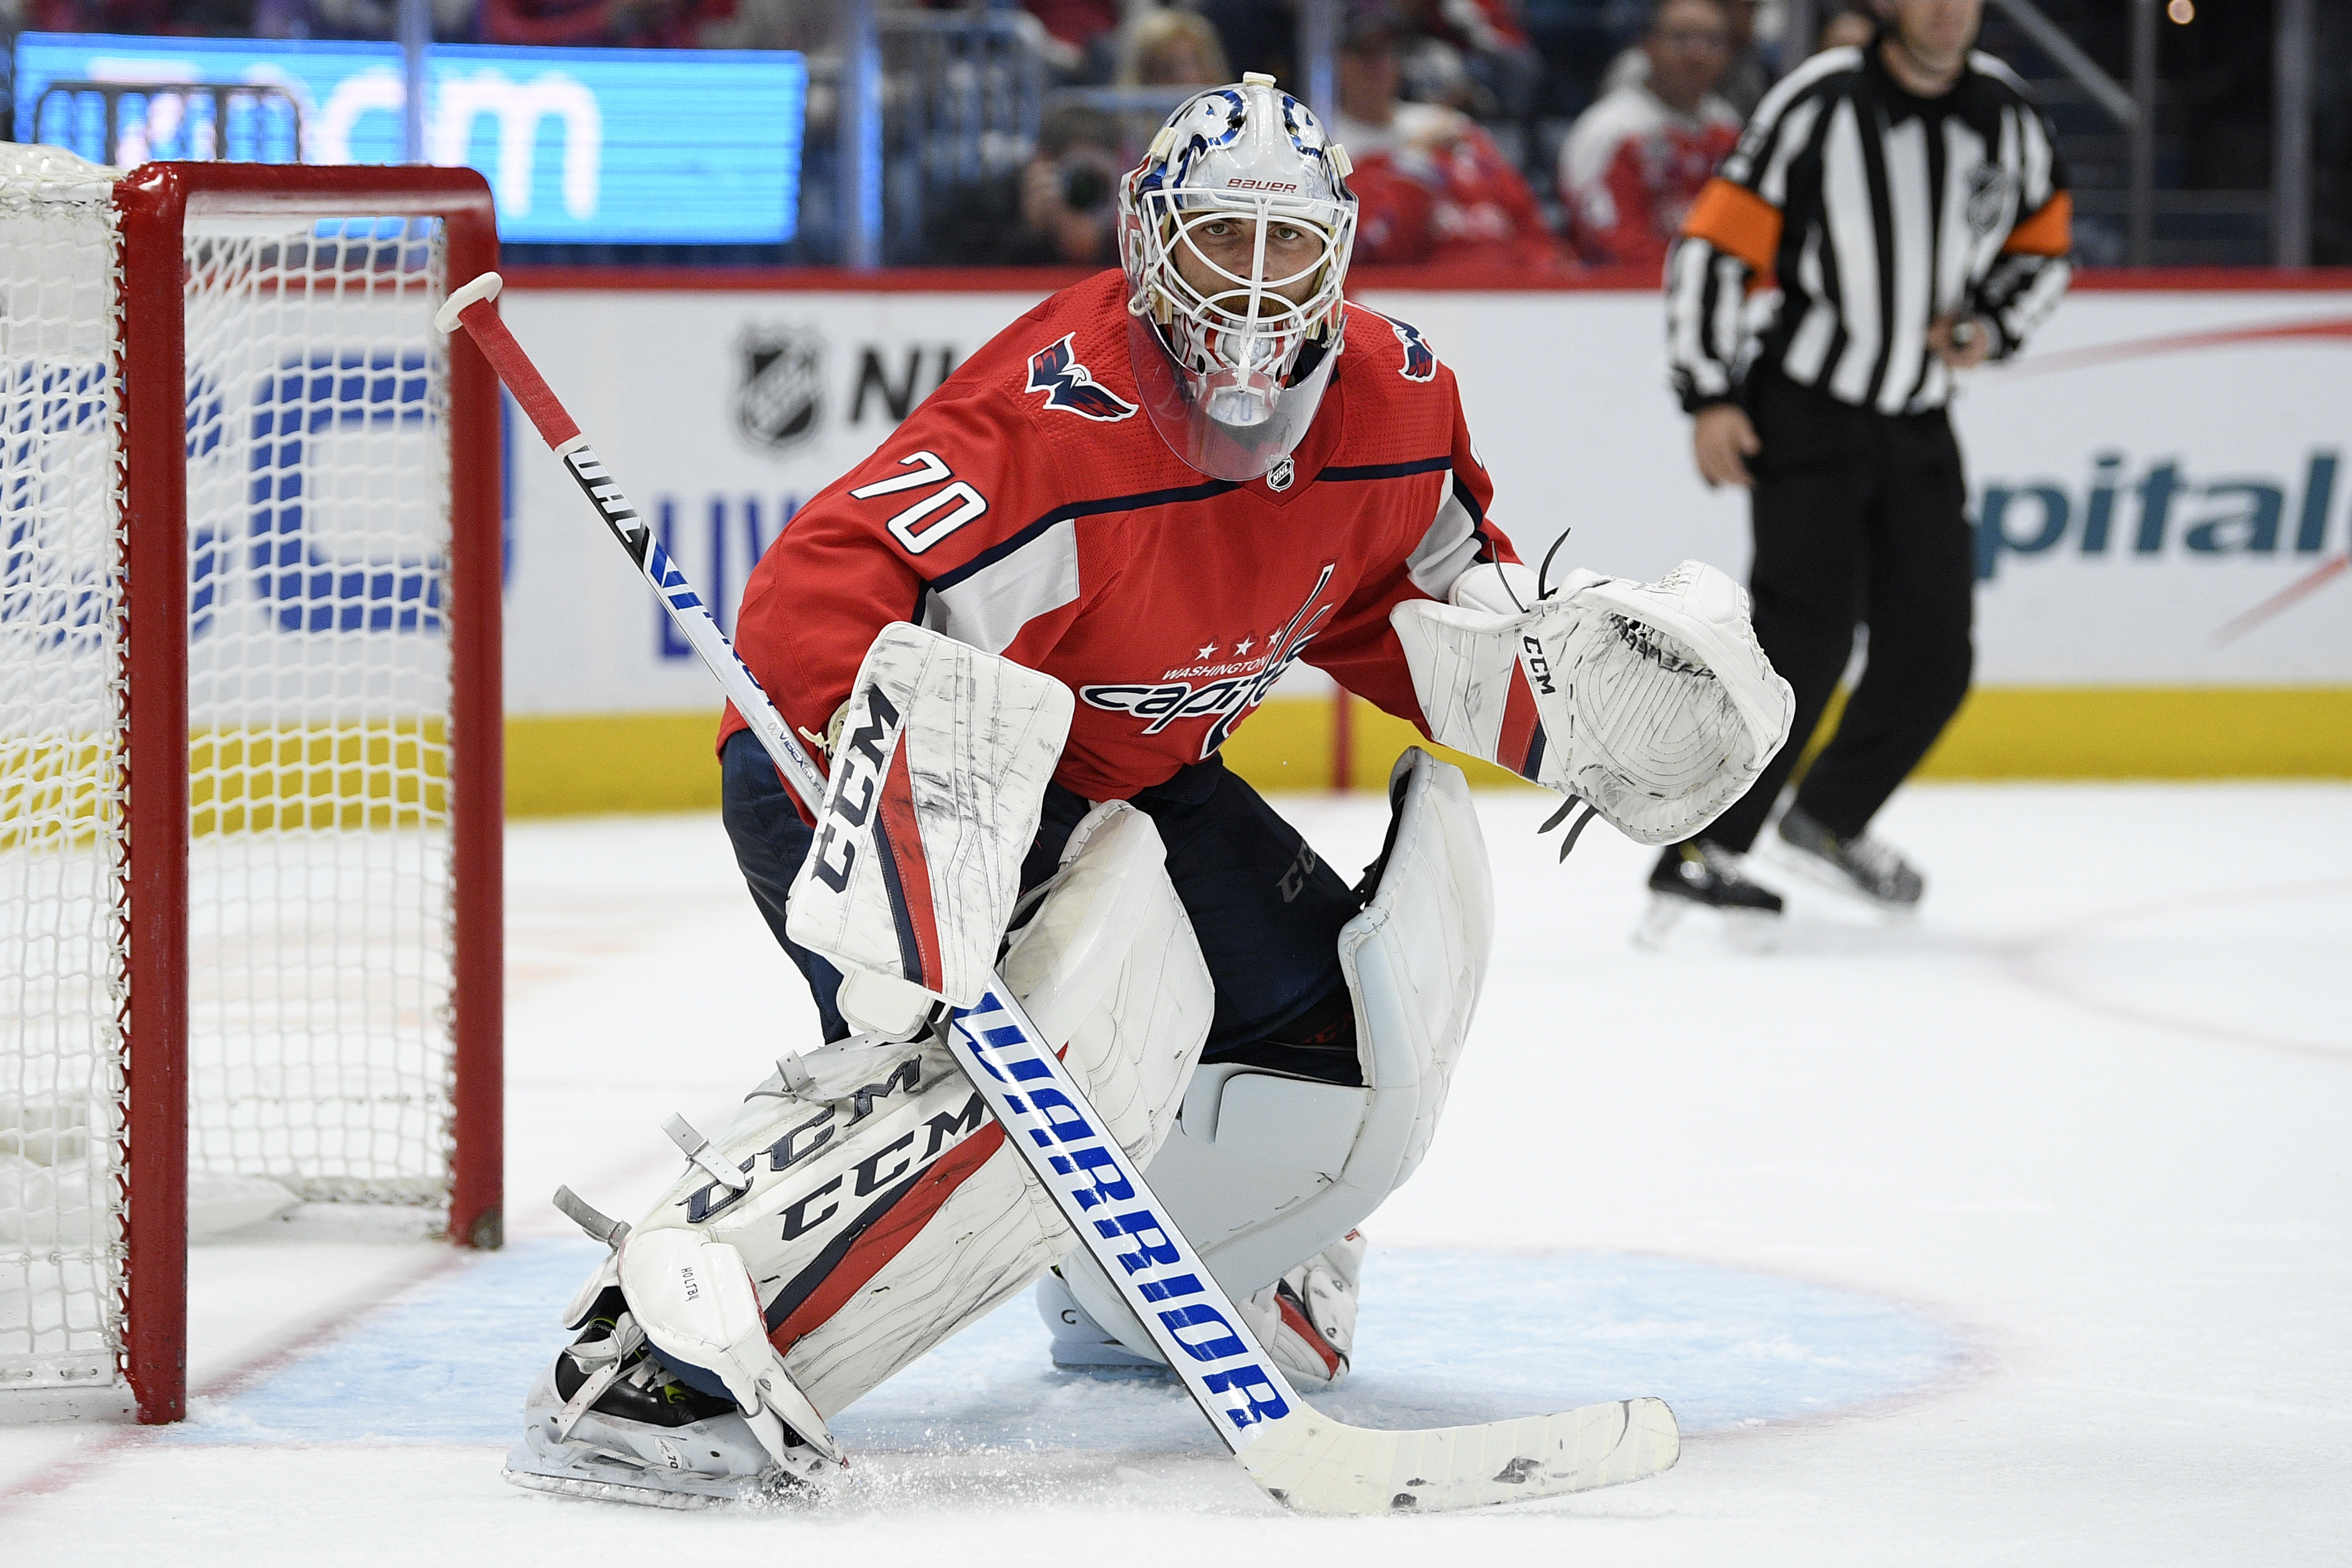 Braden Holtby His Early Struggles Forgotten Stays Strong For The Capitals The Washington Post